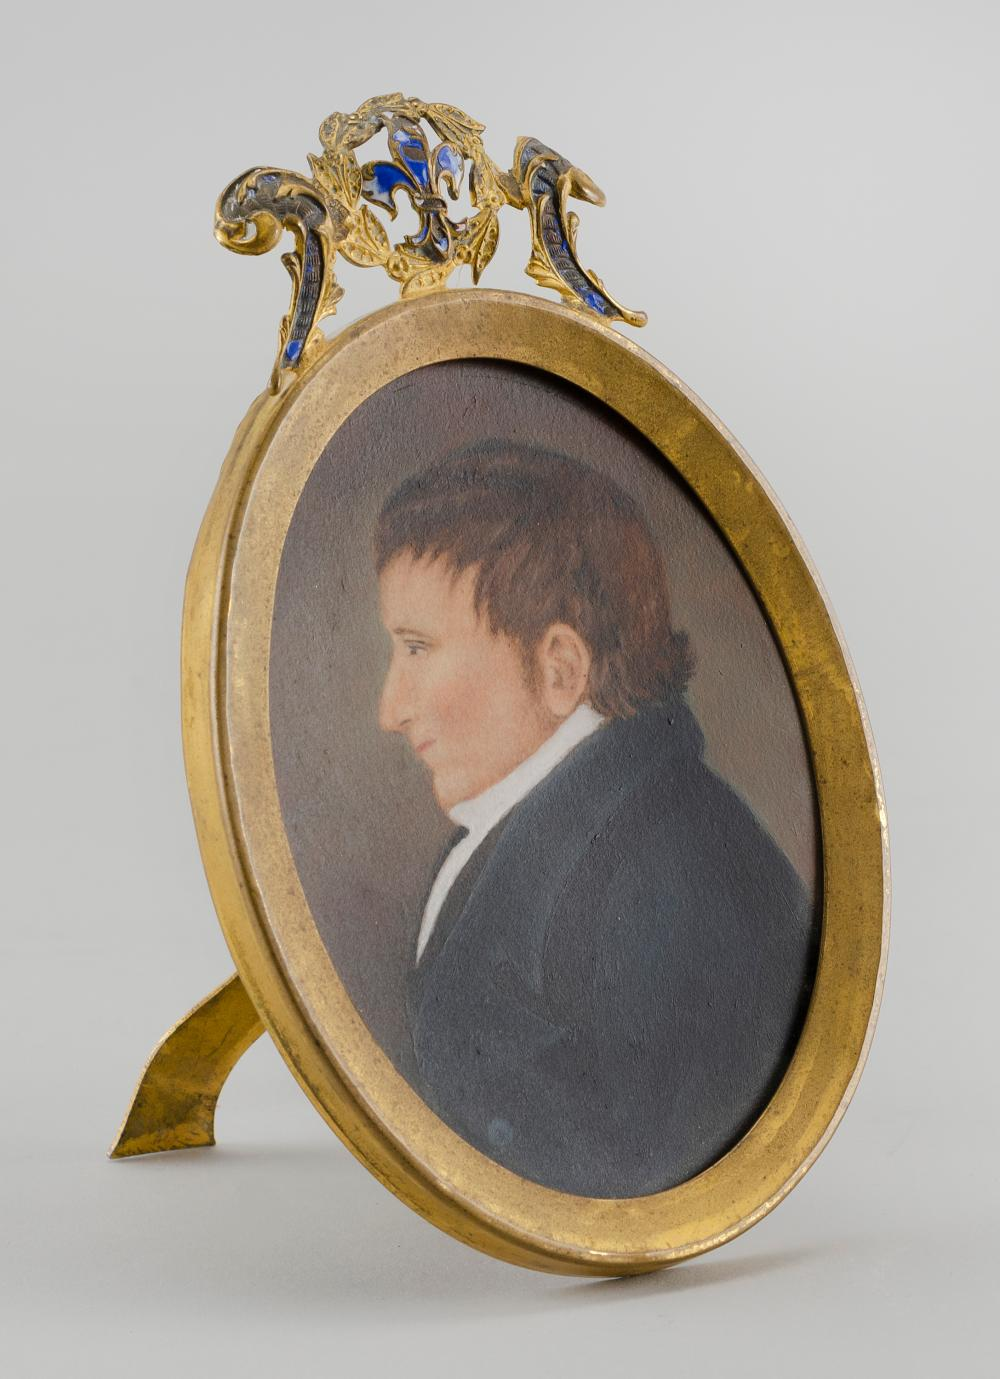 MINIATURE BUST PORTRAIT OF A MAN Housed in an Early 19th Century frame that includes a carte de visite. Information about the sitter...